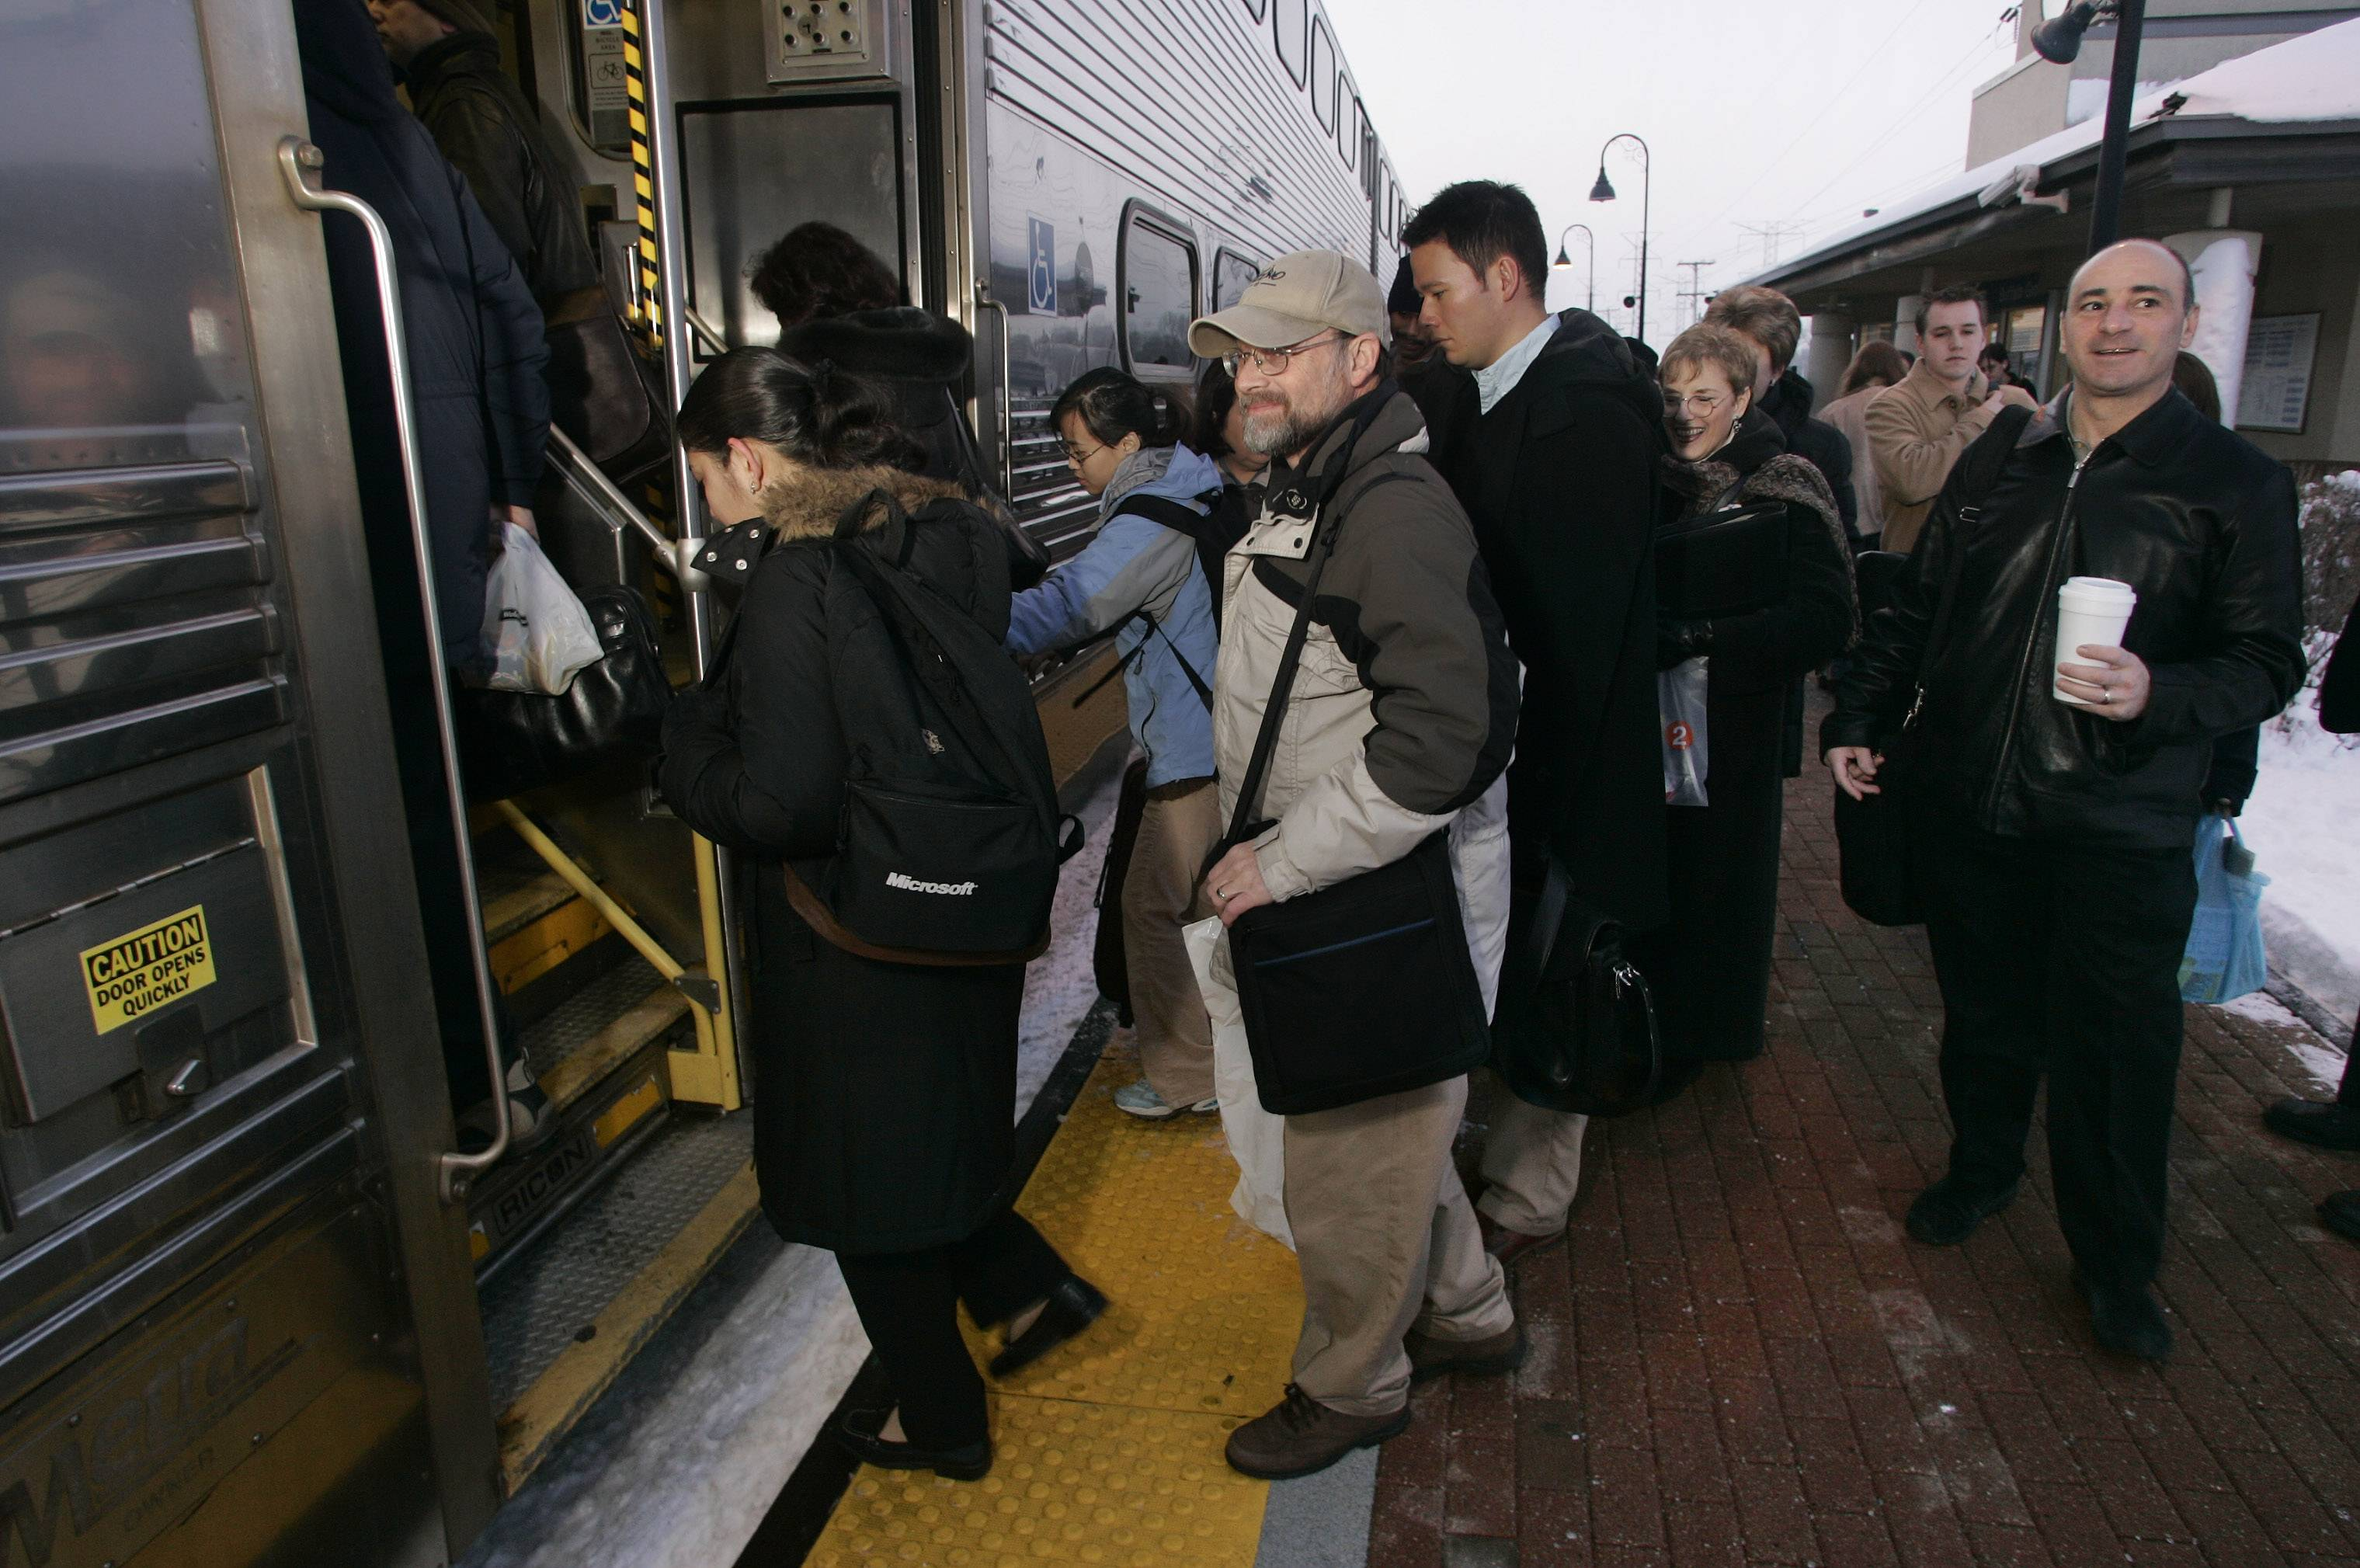 Are other fare options on Metra's horizons?